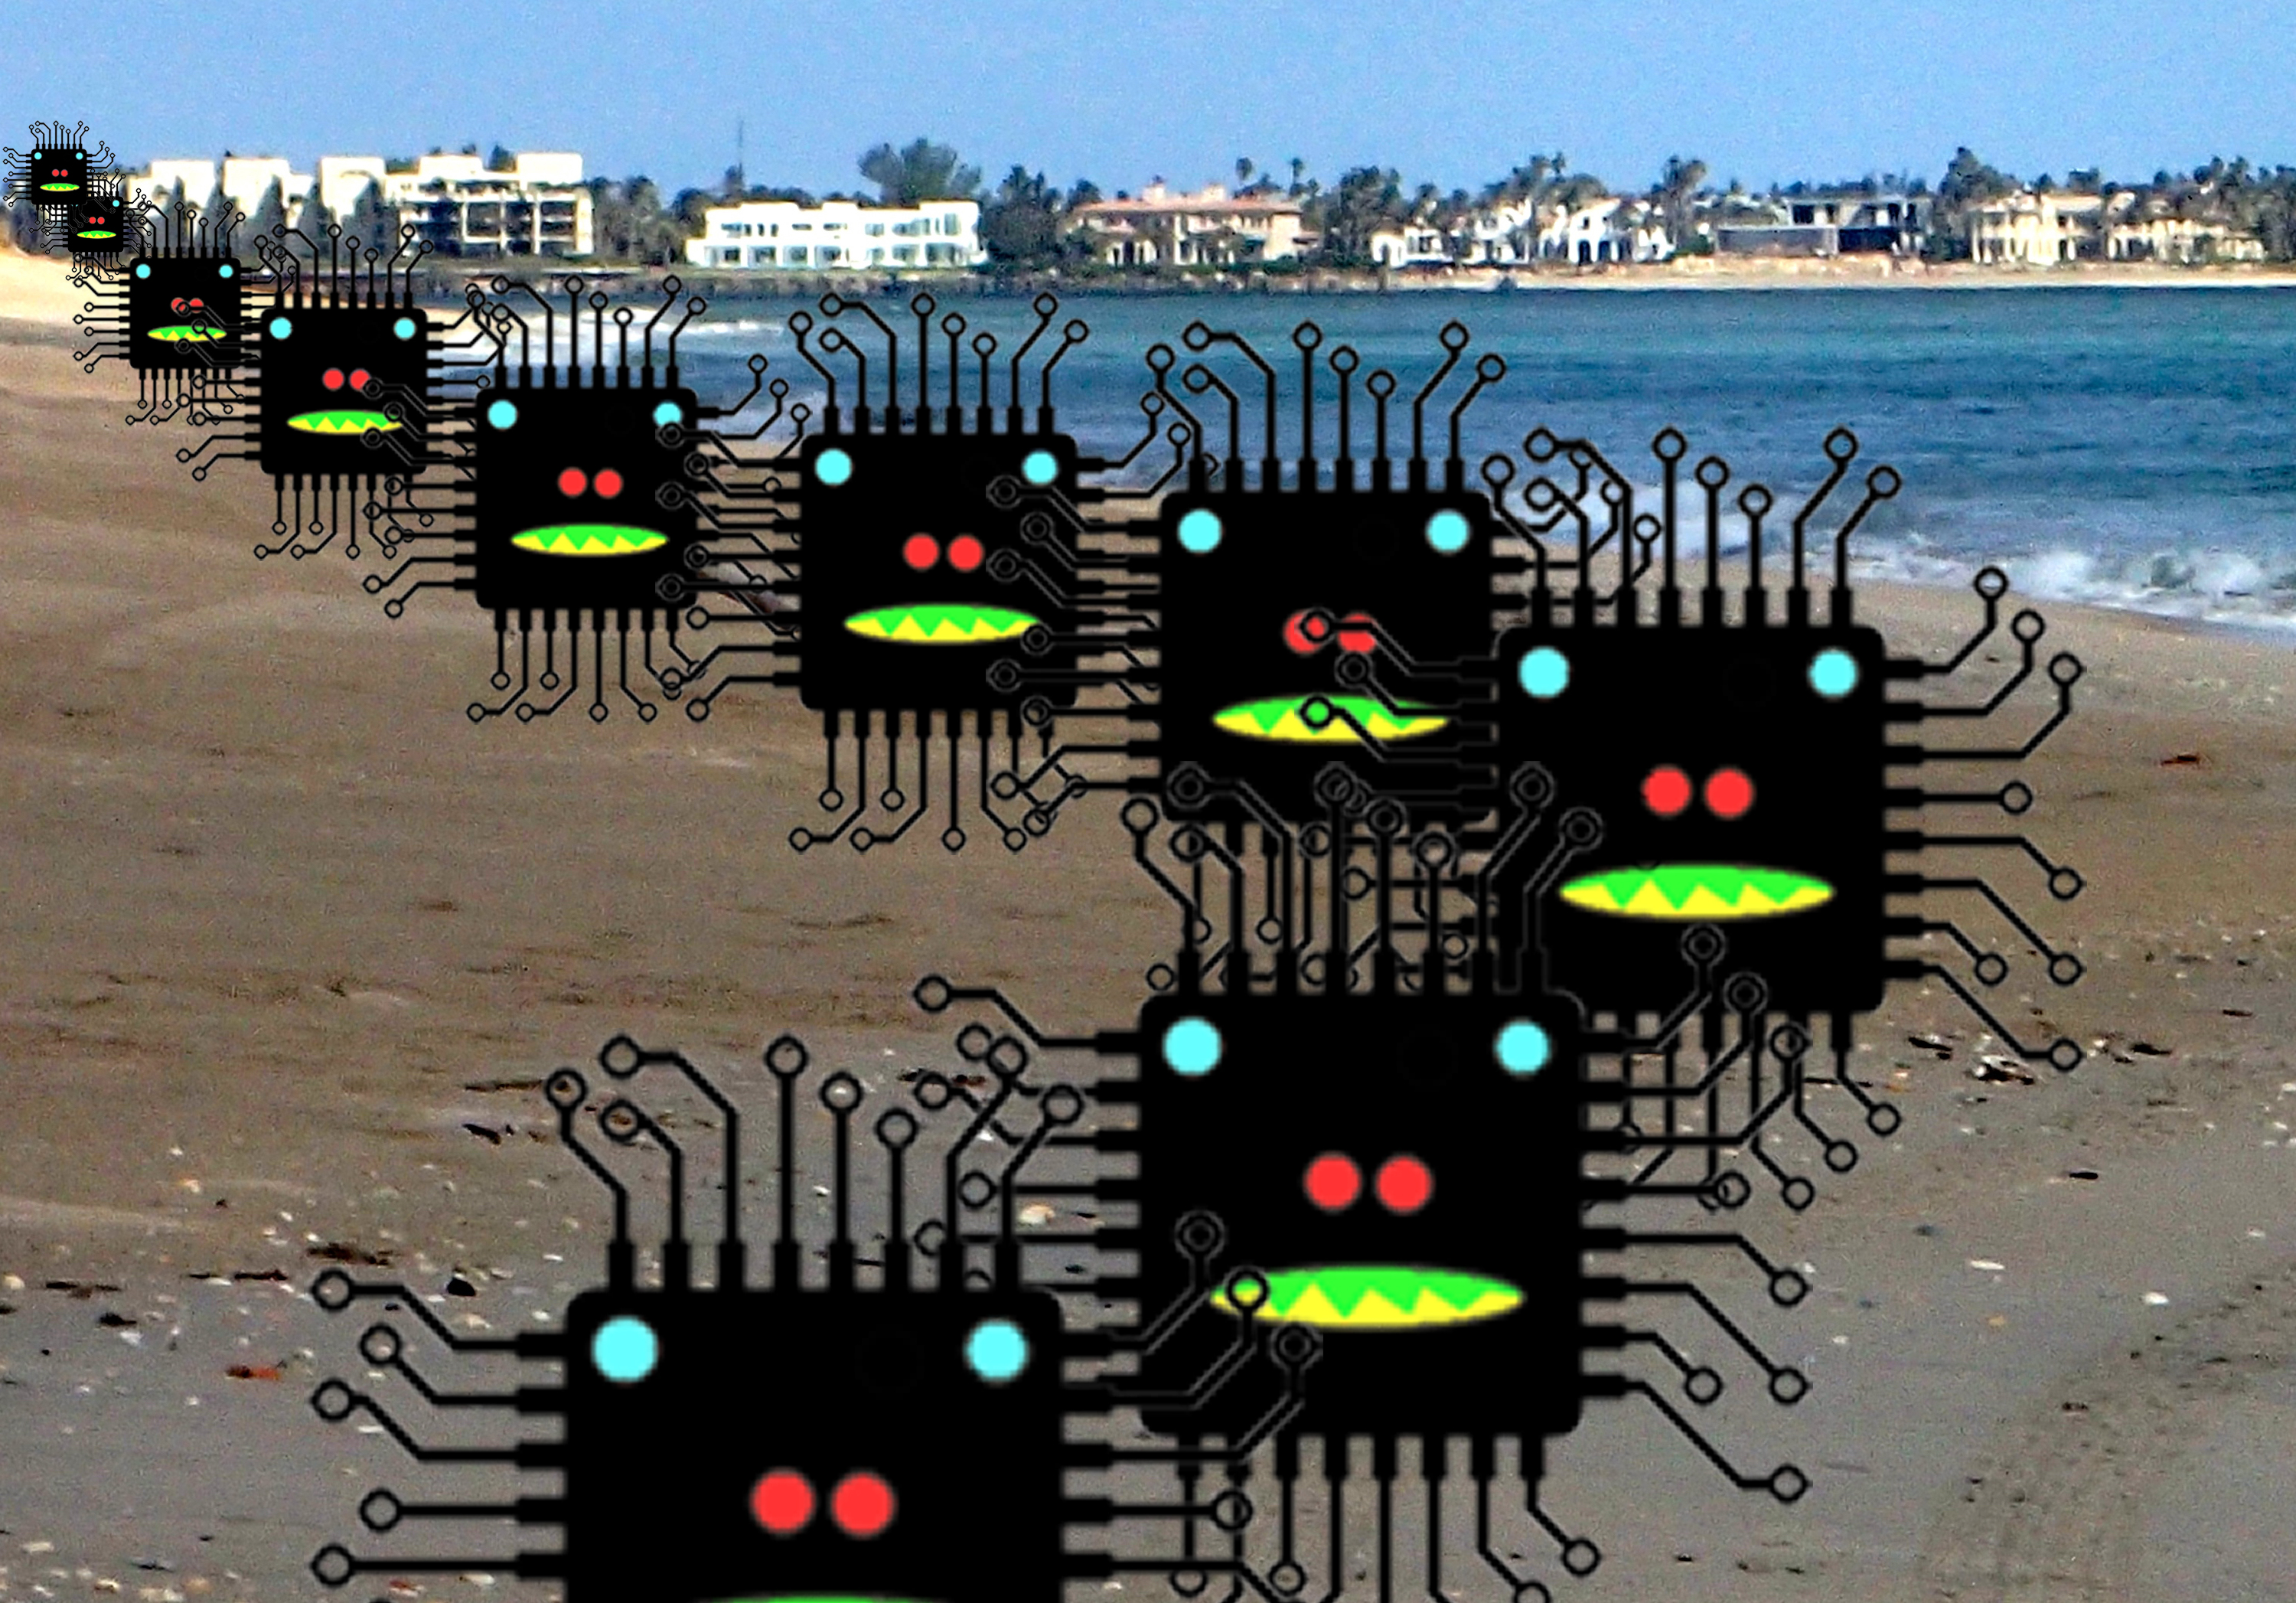 Microprocessors on parade on beach